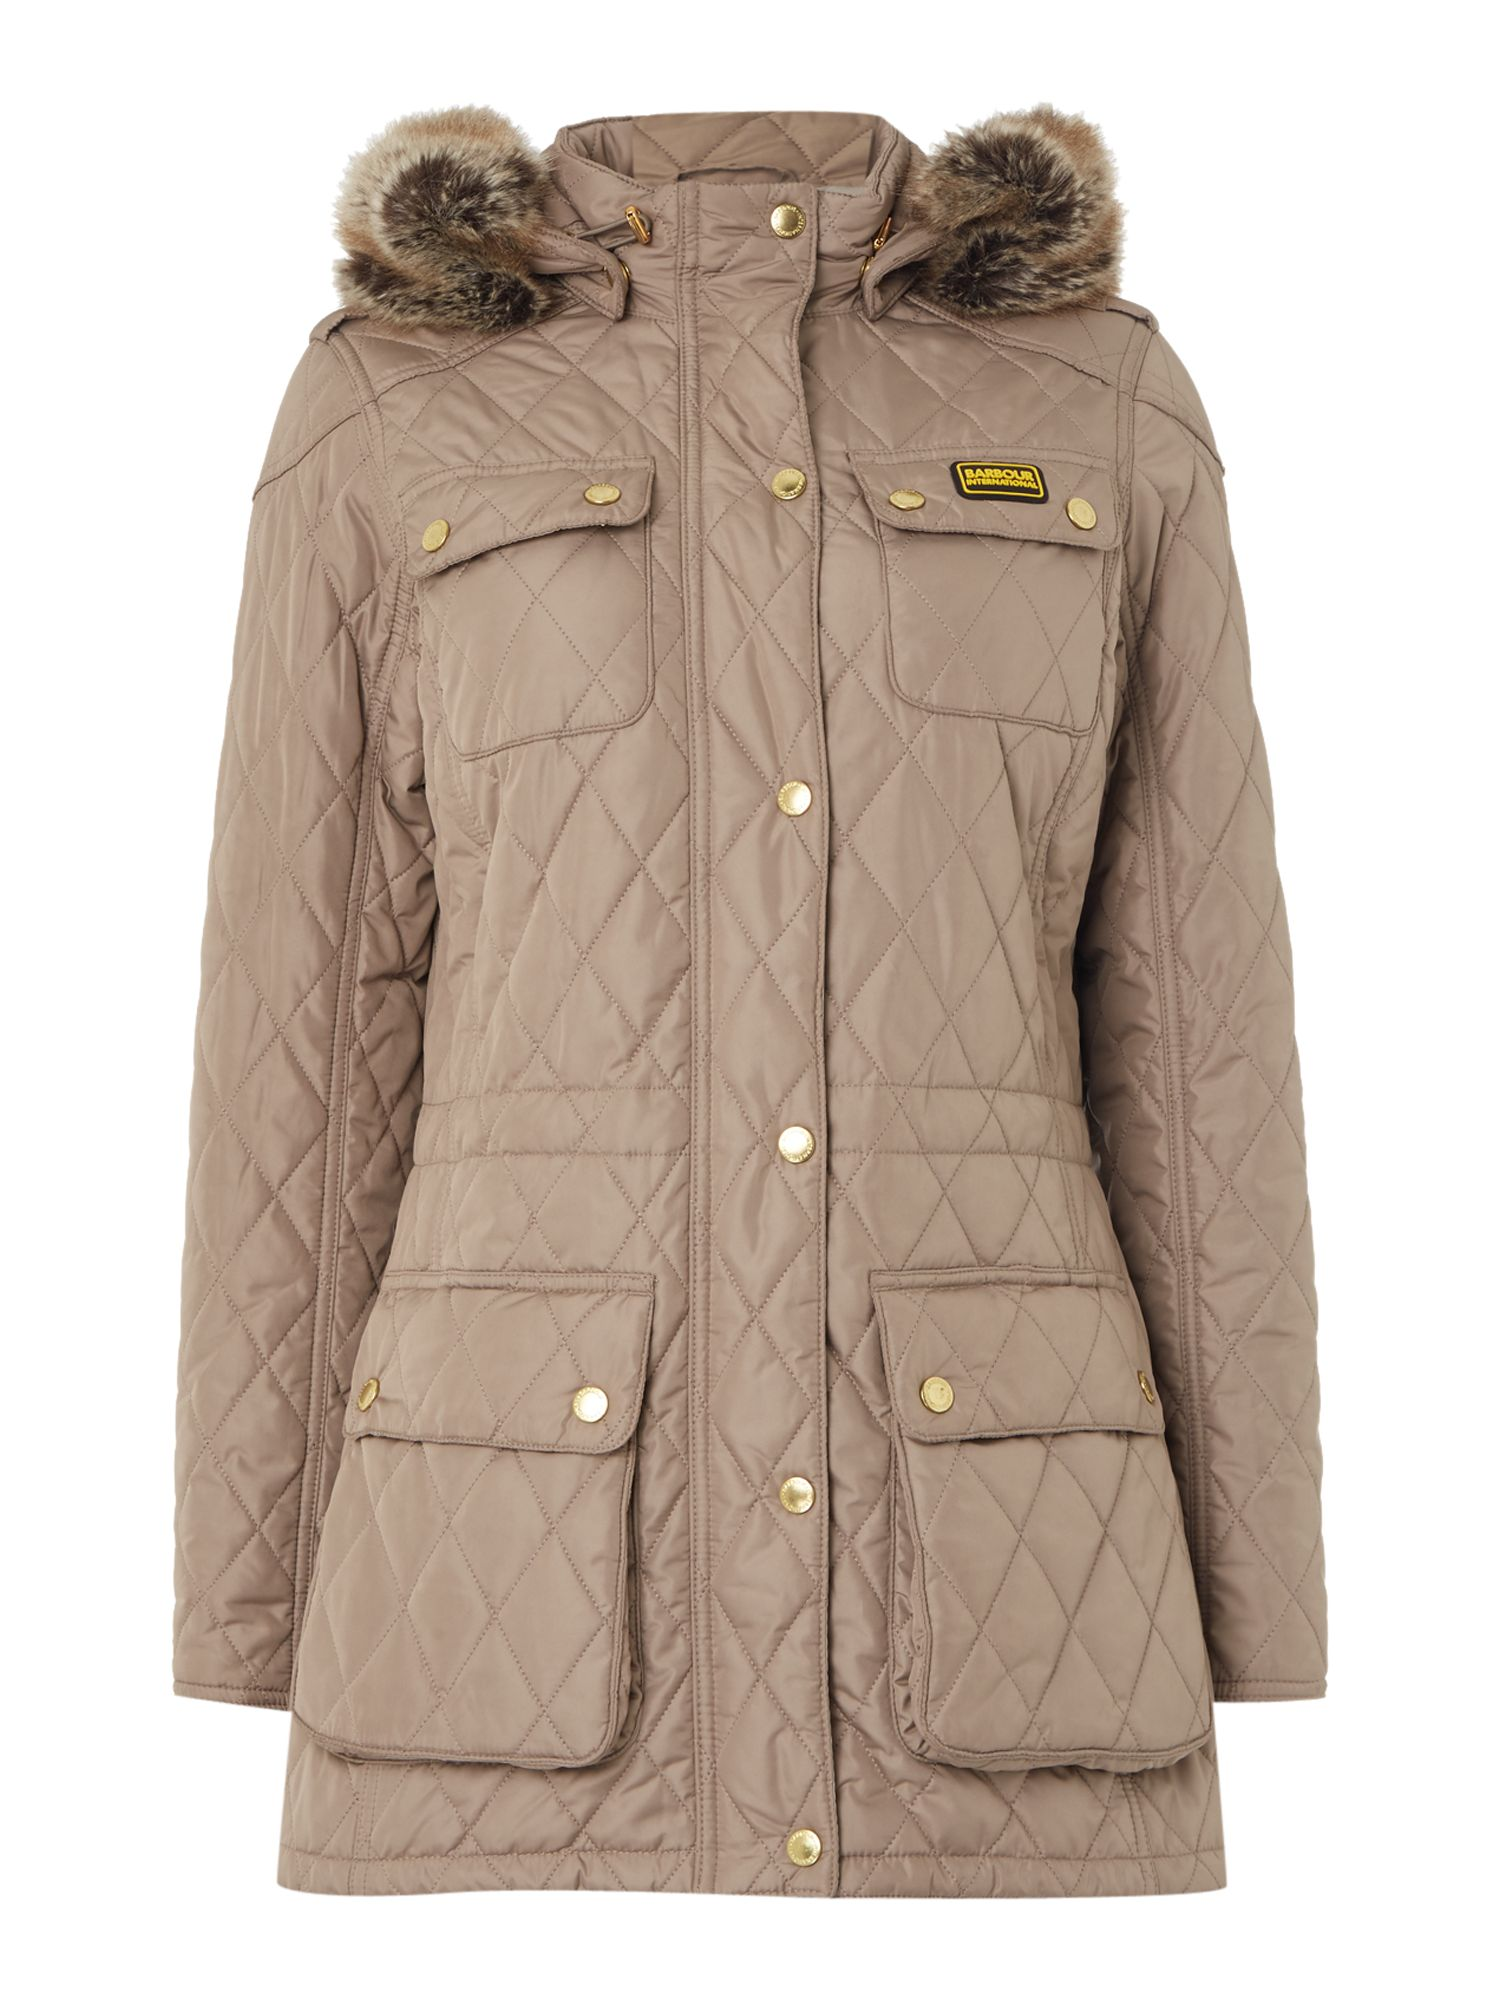 Barbour International Enduro Quilt, Taupe